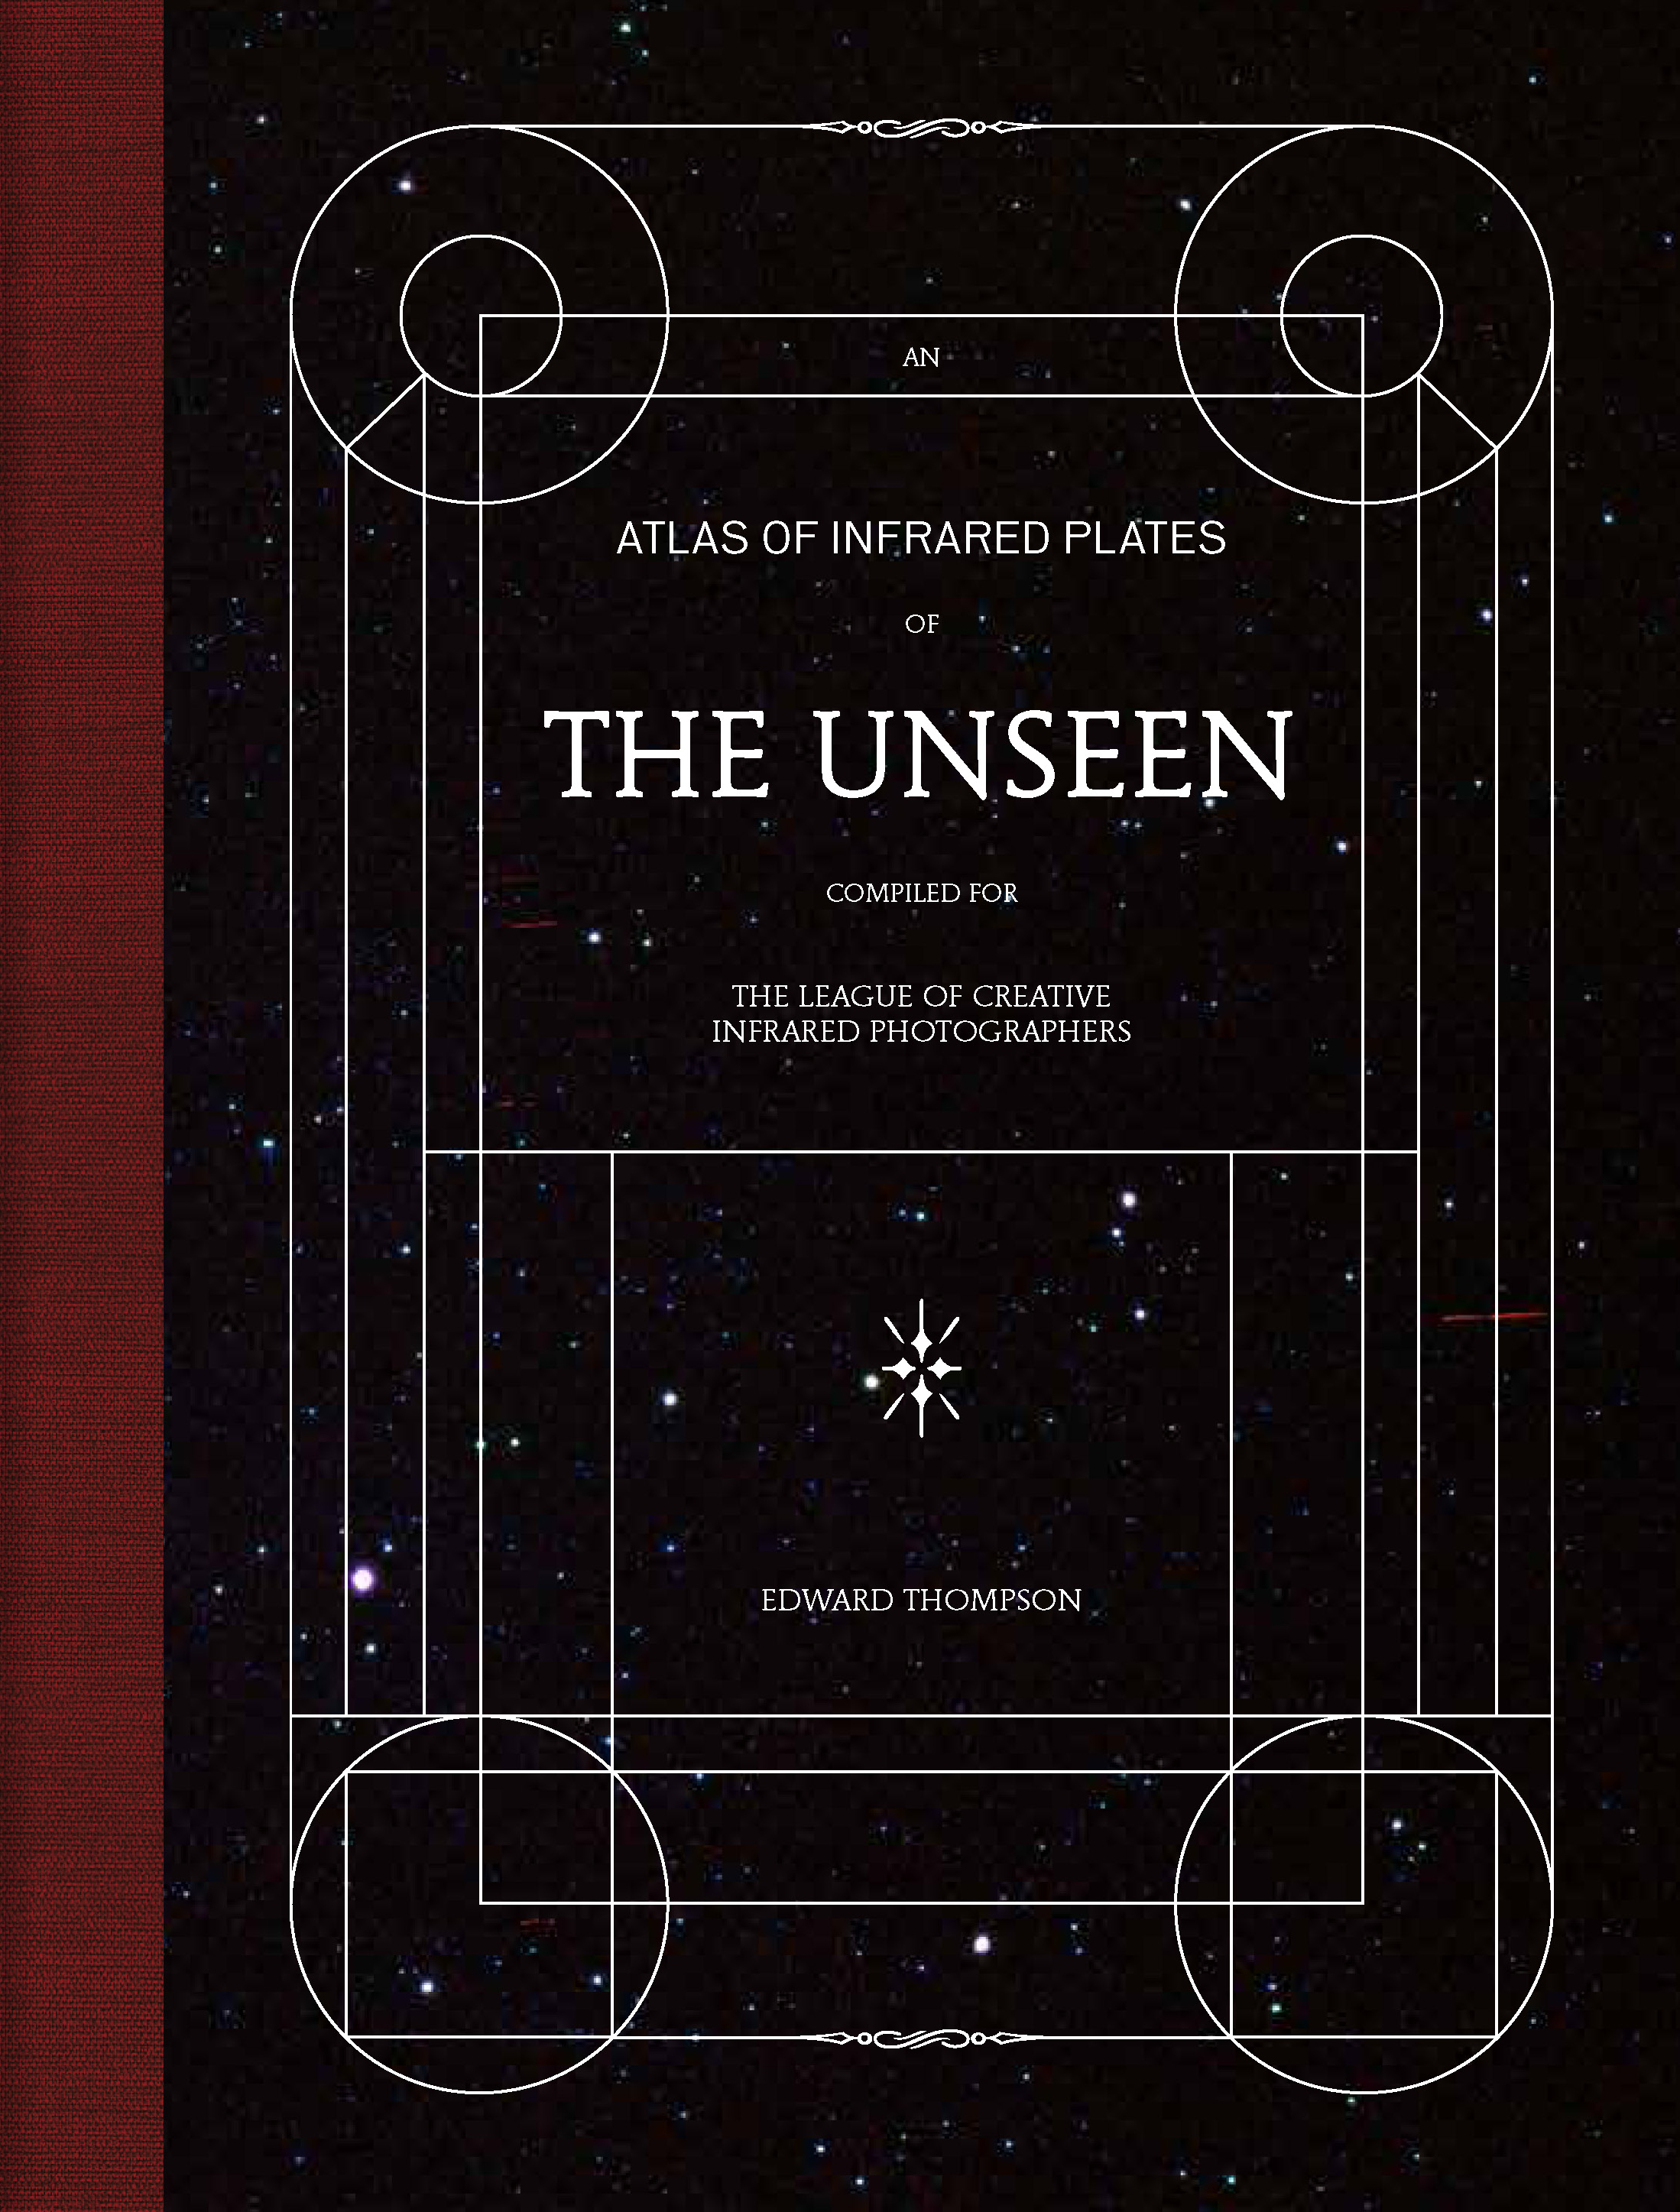 edward-thompson-the-unseen-cover